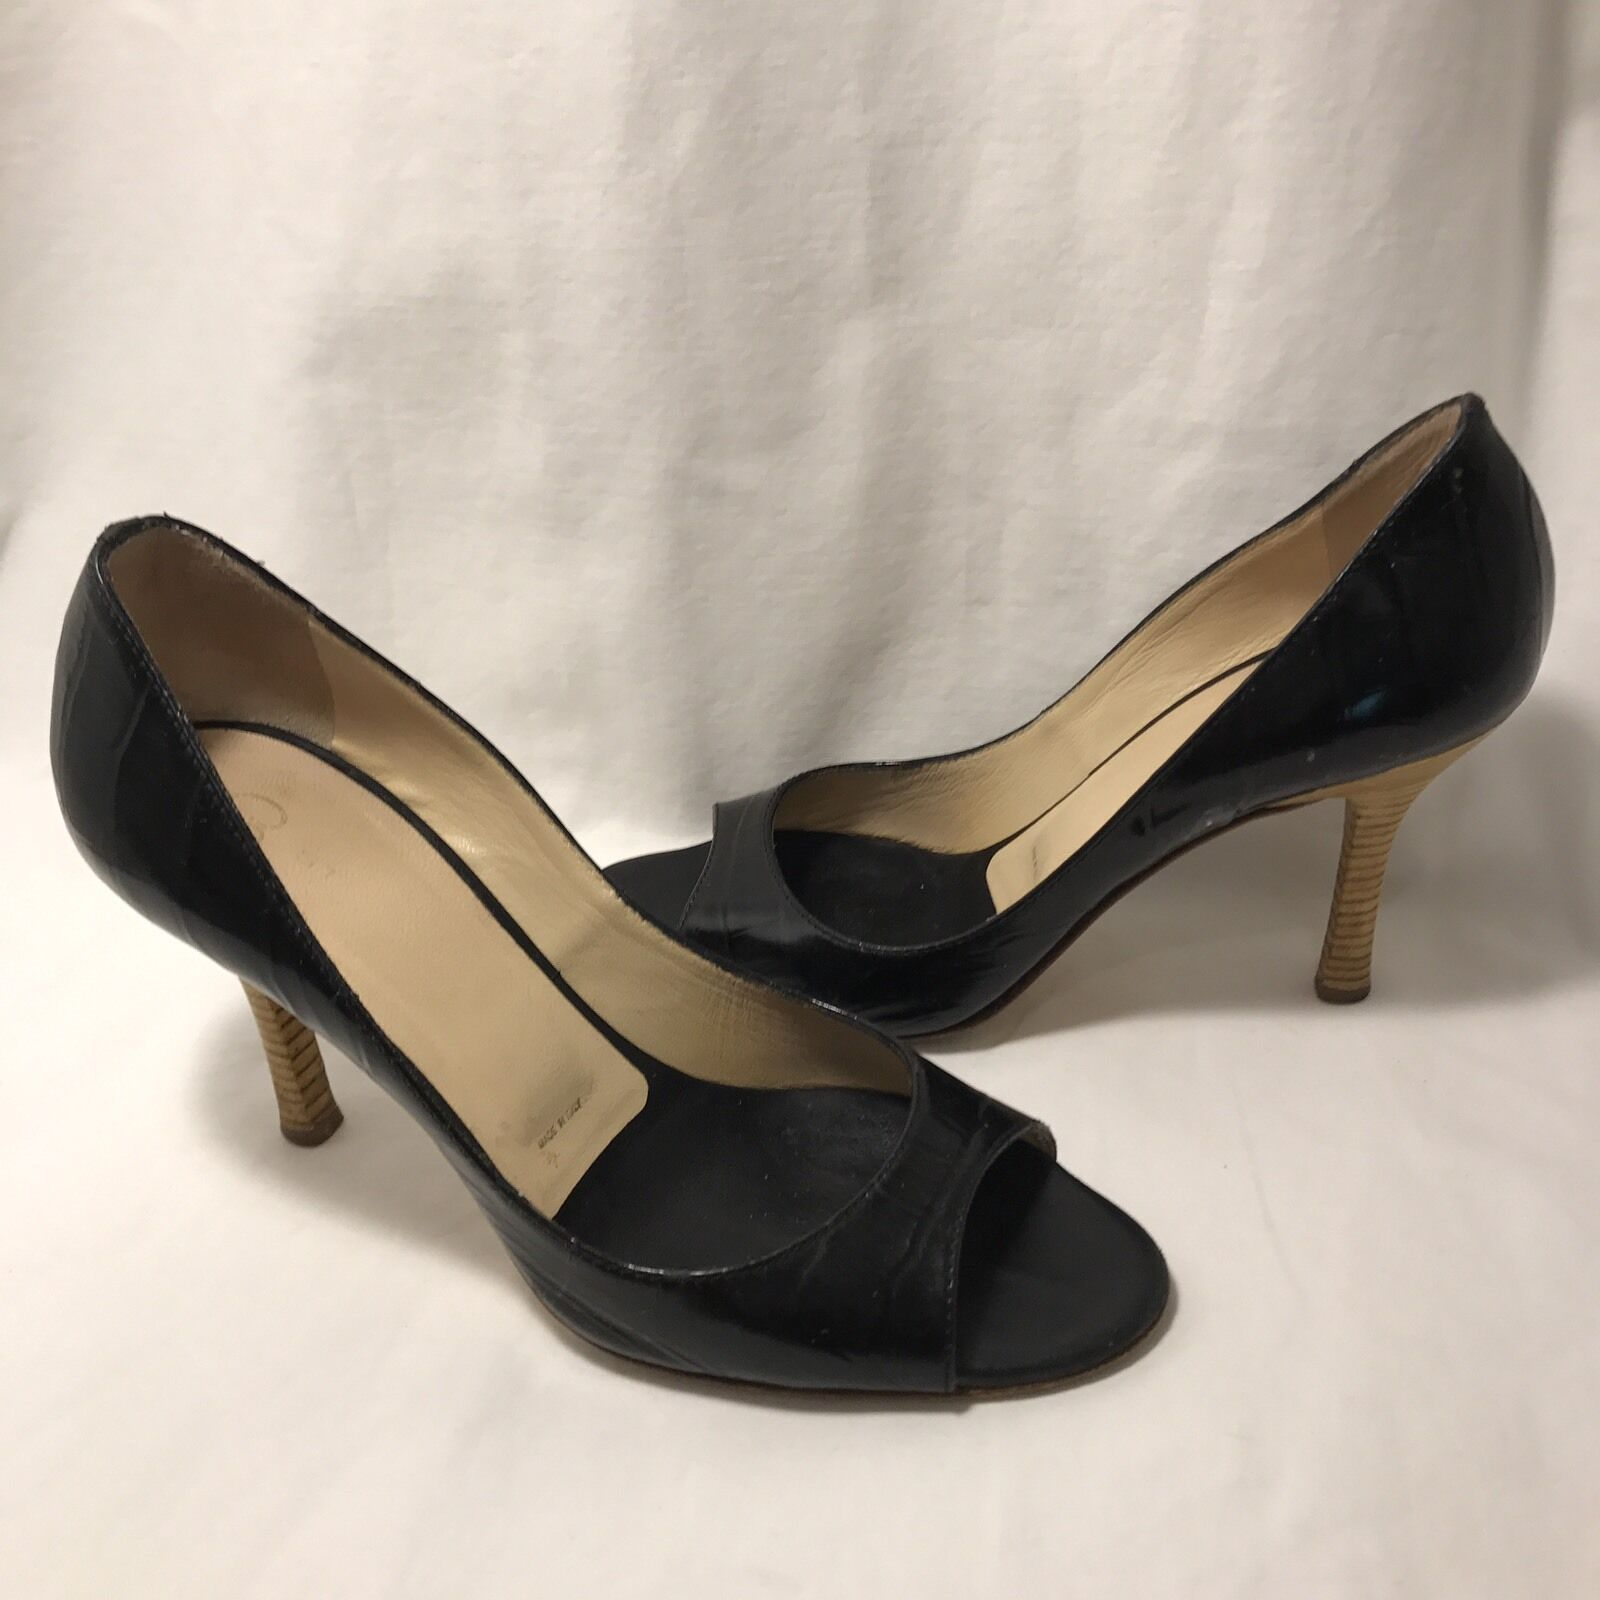 St John Shoes Peep Toe Pumps Size 6.5B Black Leather Italy Stacked Heels